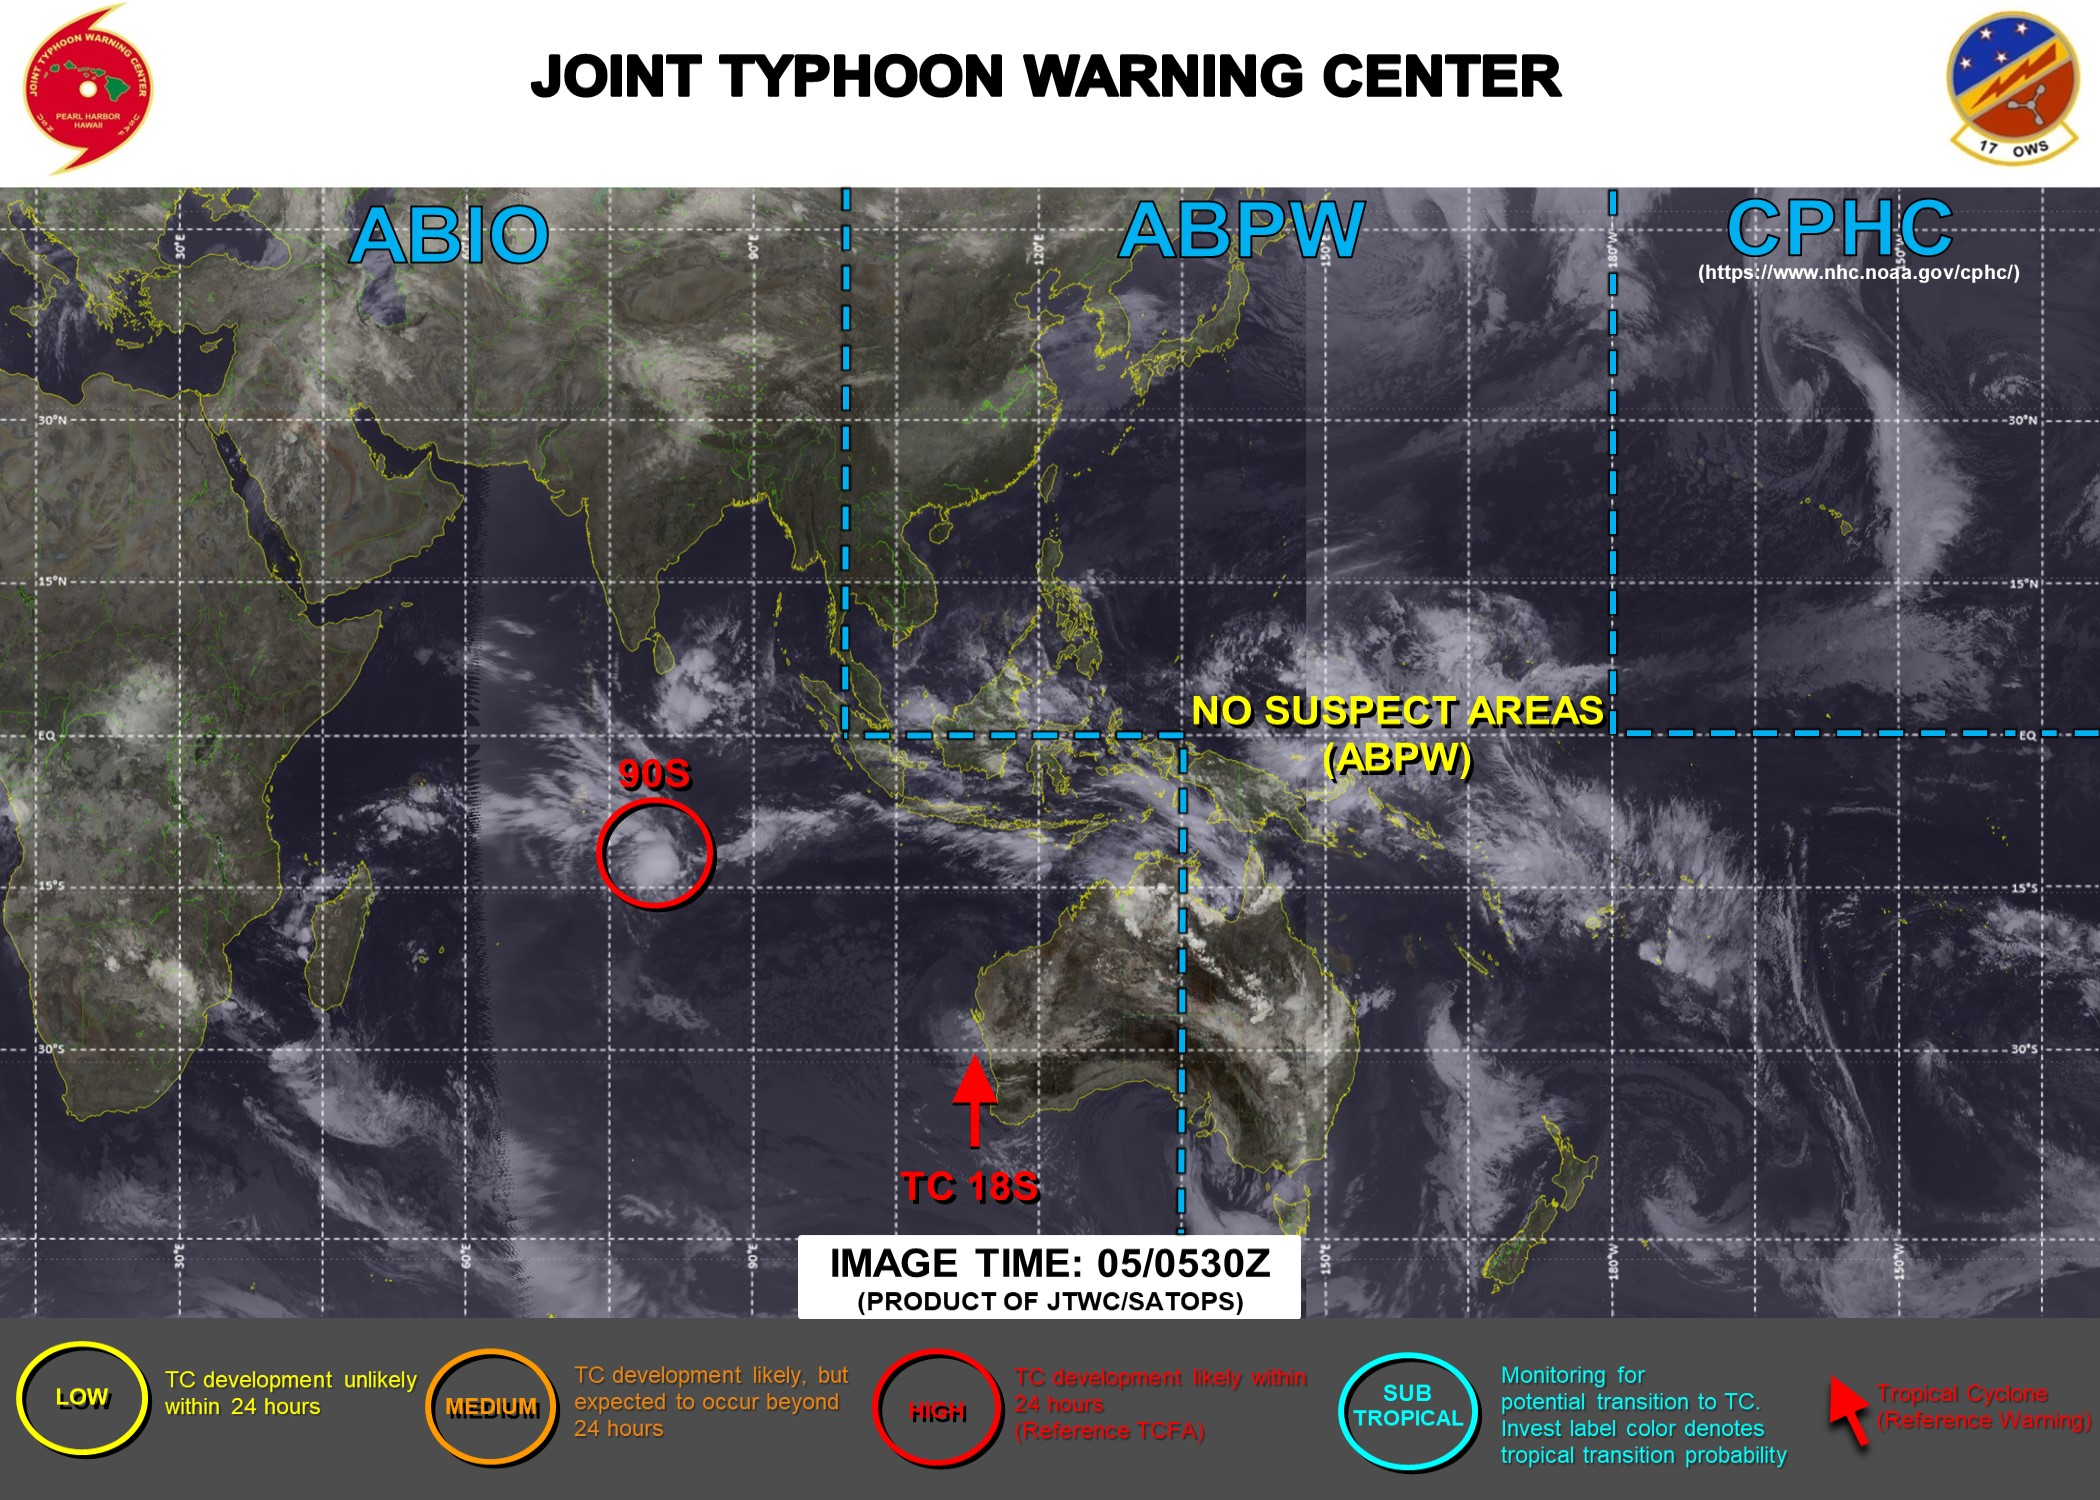 JTWC HAS BEEN ISSUING 6HOURLY WARNINGS ON 18S(EIGHTEEN). 3HOURLY SATELLITE BULLETINS ARE PROVIDED FOR 18S AND INVEST 90S. THEY WERE DISCONTINUED FOR THE REMNANTS OF 17P(LUCAS) AT 04/1140UTC.